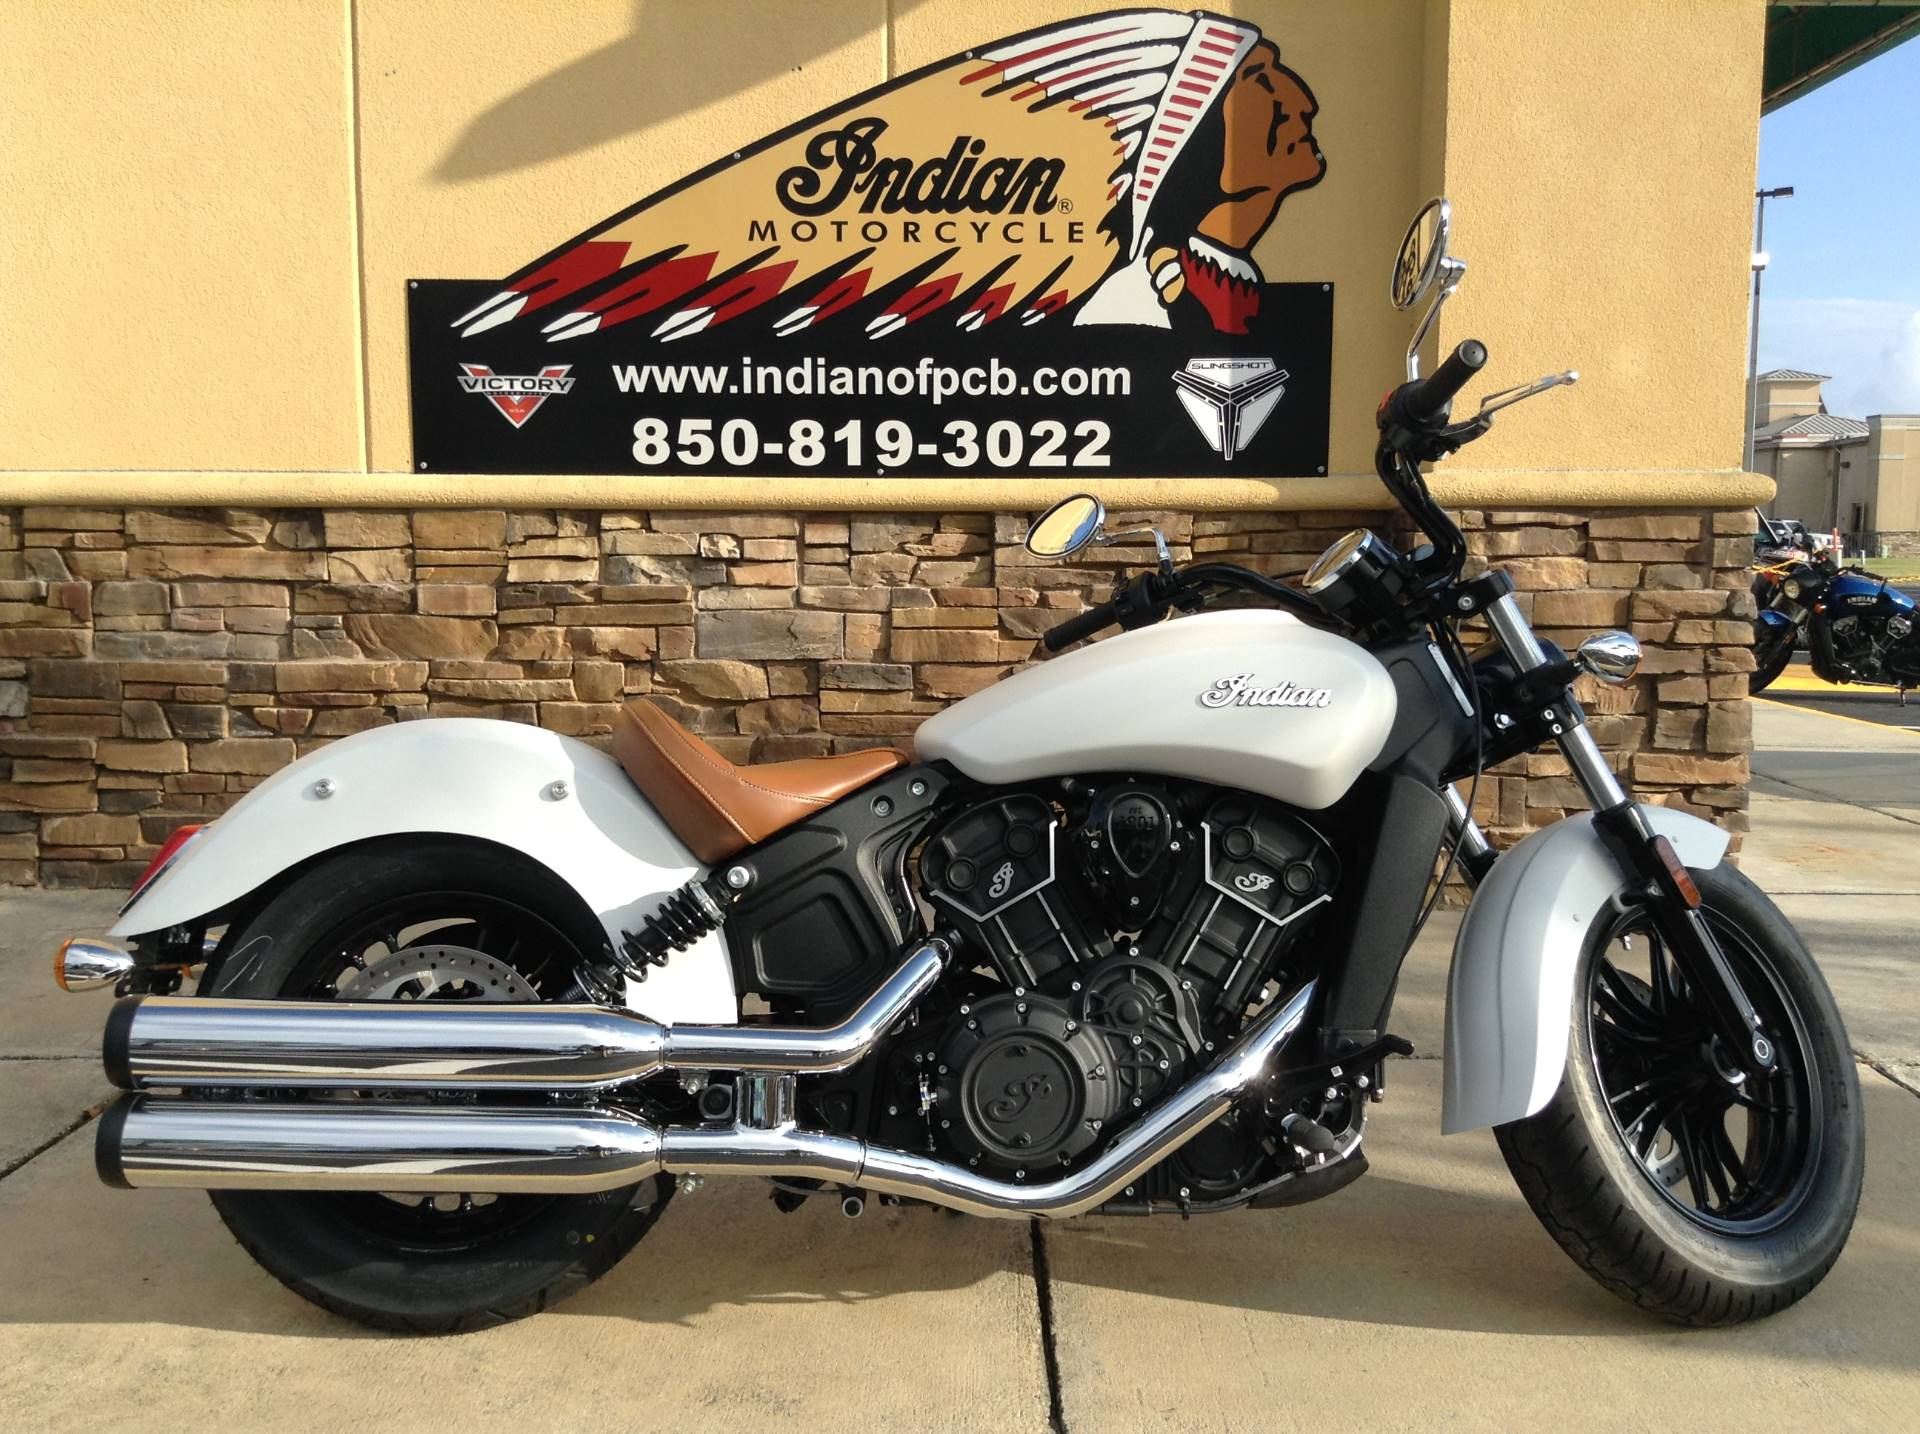 2019 Indian SCOUT SIXTY in Panama City Beach, Florida